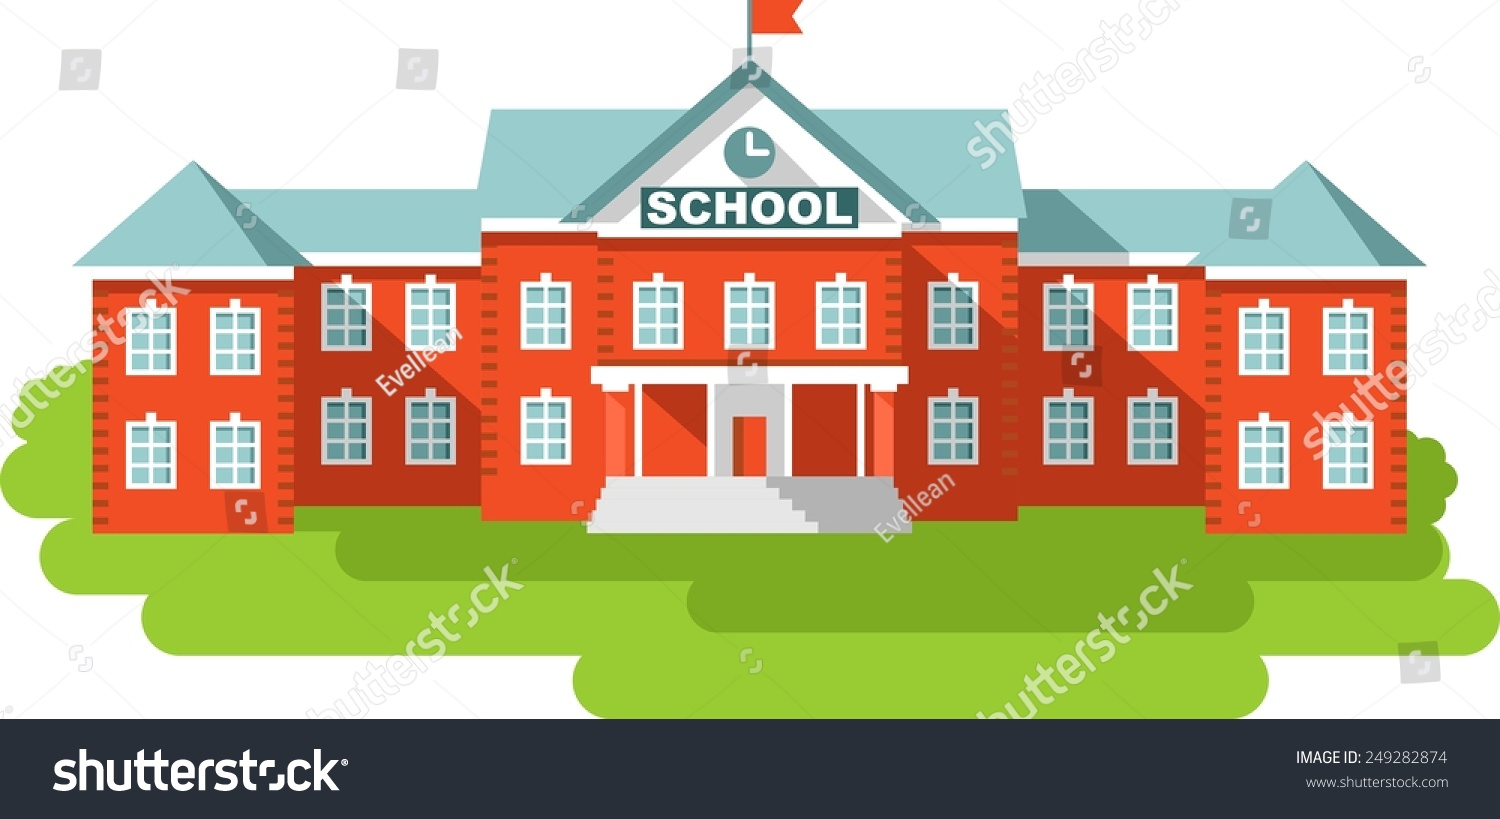 Classical school building isolated on white stock vector for Classic house music downloads